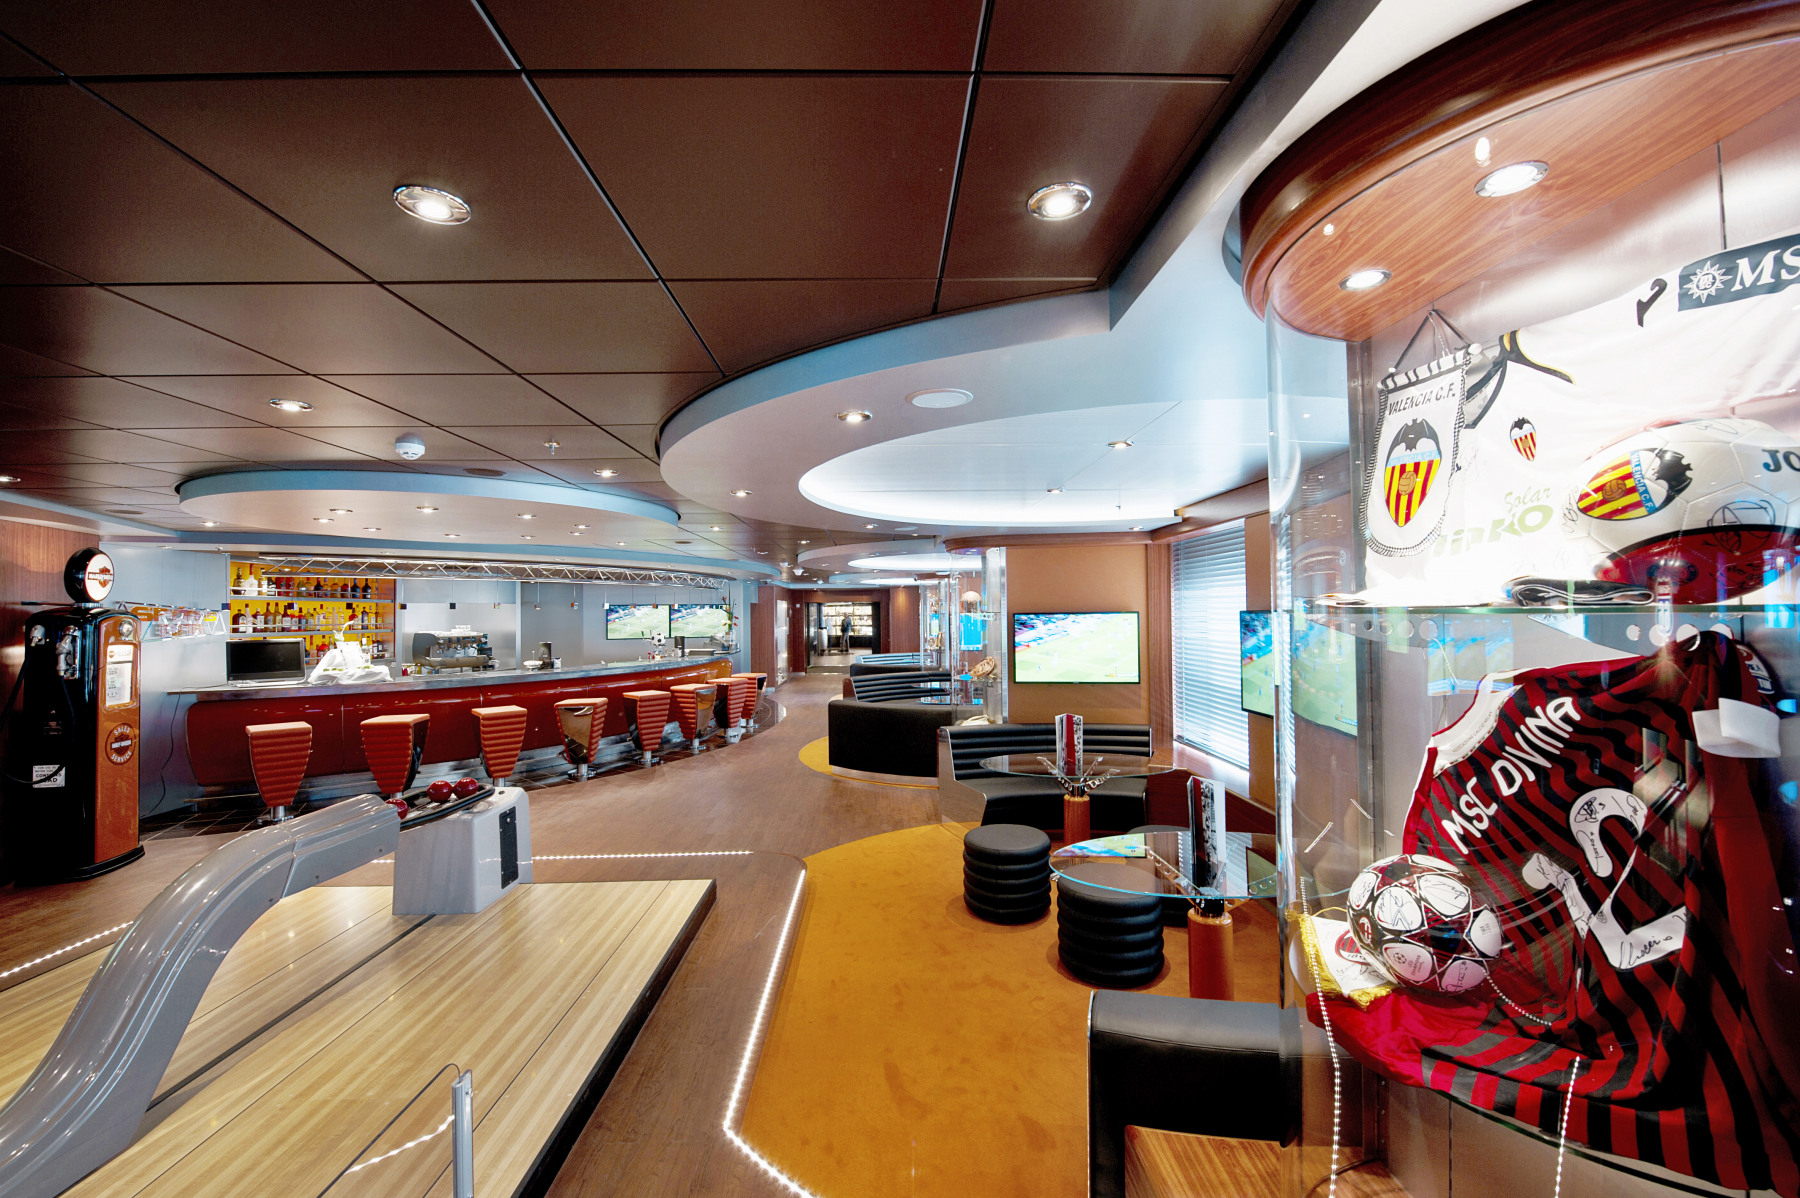 MSC Fantasia Class sports bar 2.jpg